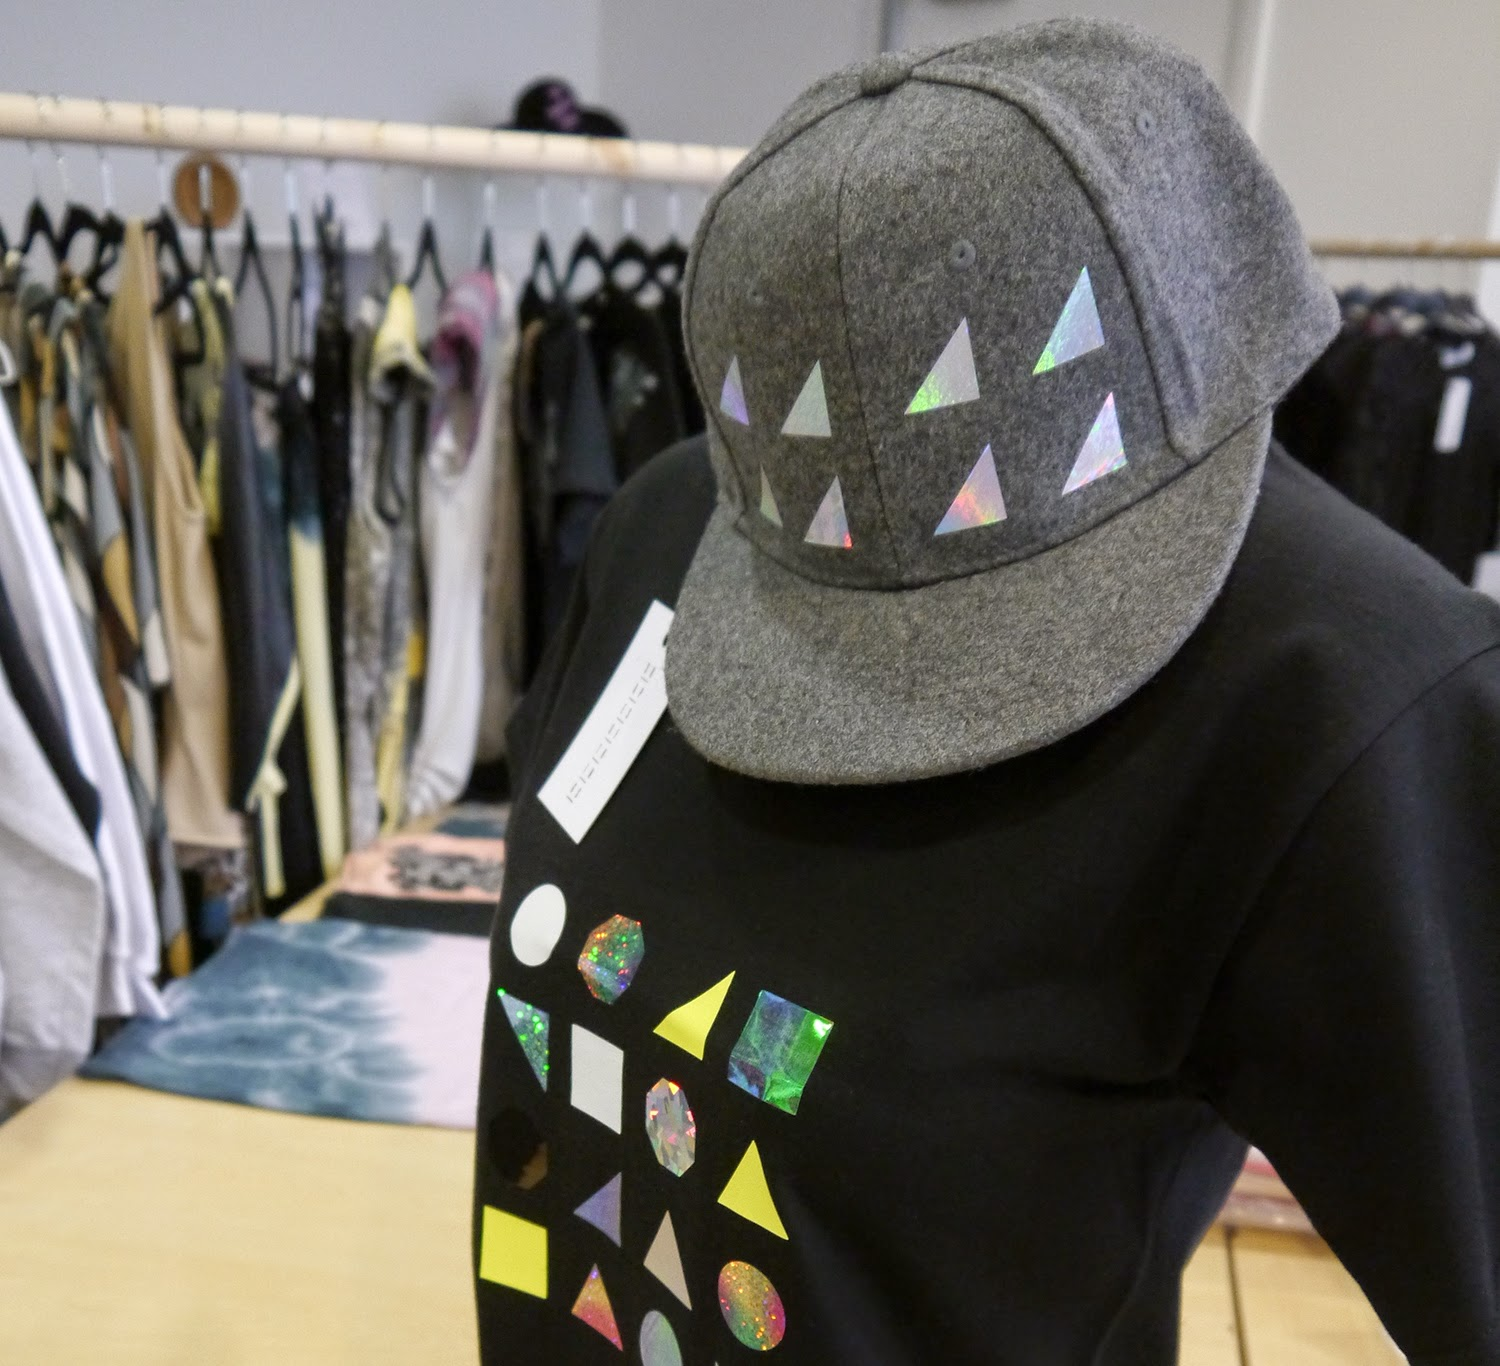 Wear Eponymous, The Wardrobe, Glasgow Fort, Glasgow Pop Up Shop, Shop Display, Scottish Design, Shapes of Things, hat, tshirt design